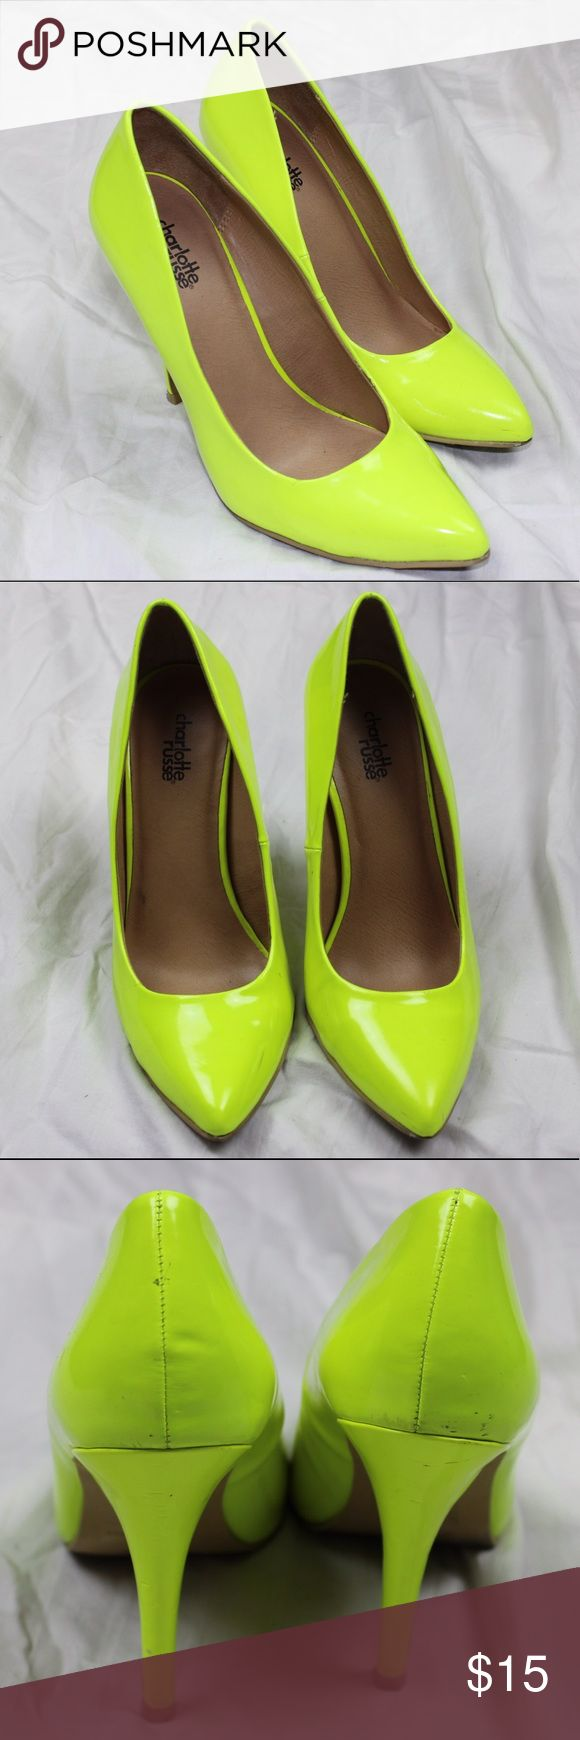 Neon Yellow Pointed Toe Cosplay Club Heels The bottoms show some signs of wear and the backs have some slight damage. However, these would be great to add some color to an outfit or as an addition to a costume. Measurements; Heels: 4.5' Charlotte Russe Shoes Heels